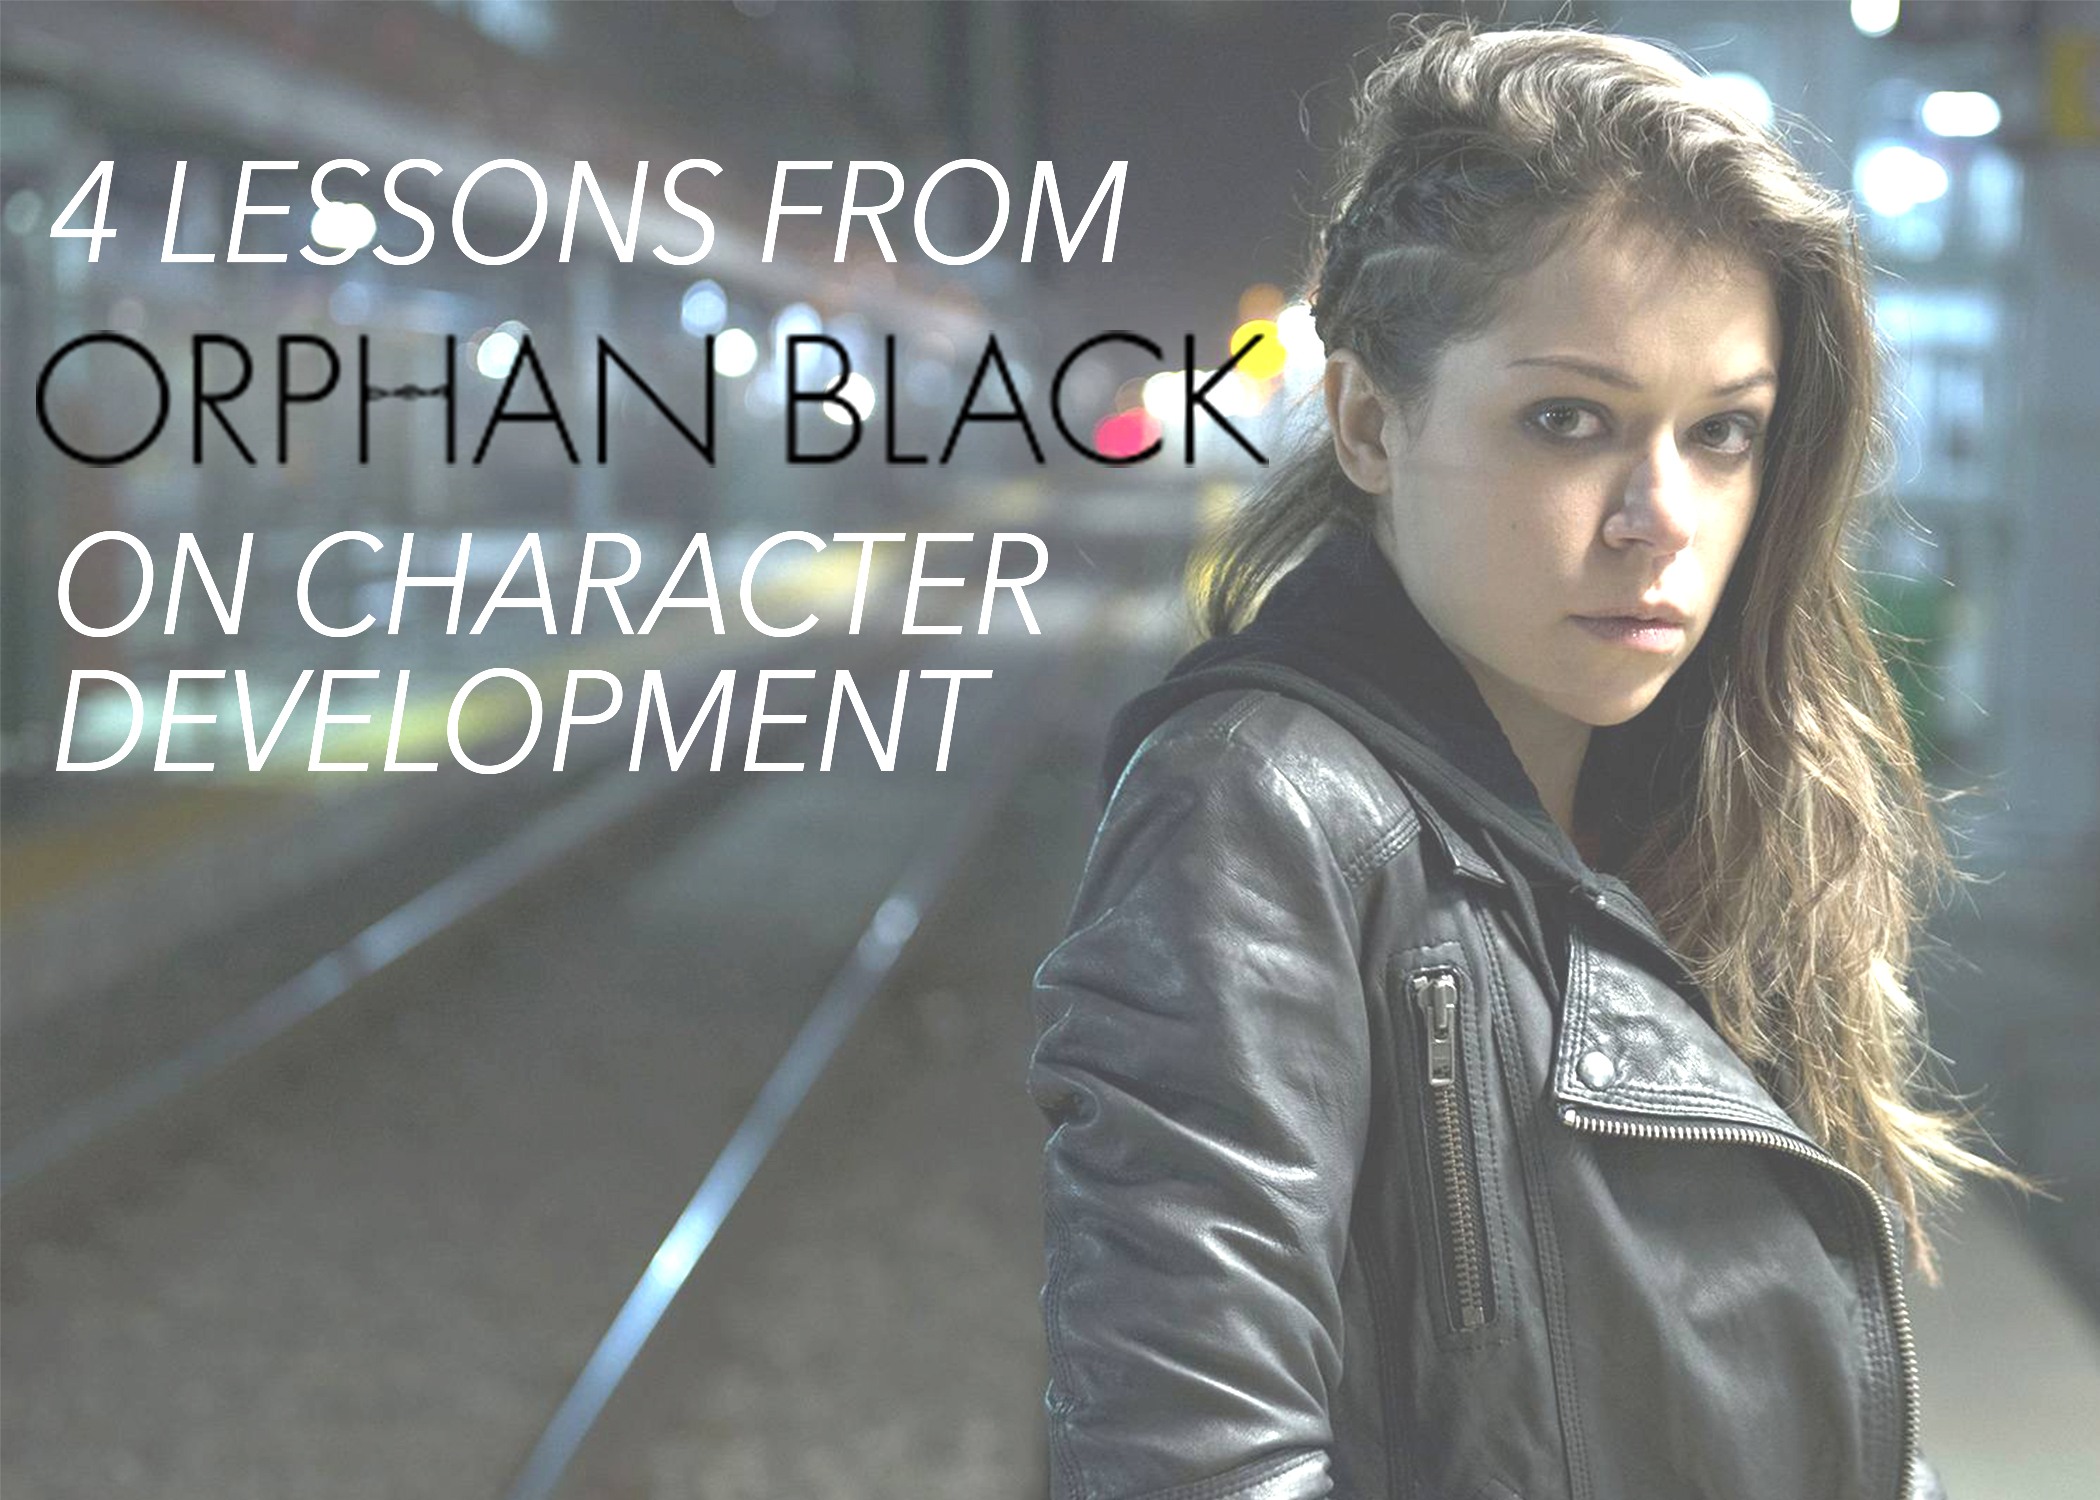 4 Lessons from Orphan Black on Character Development